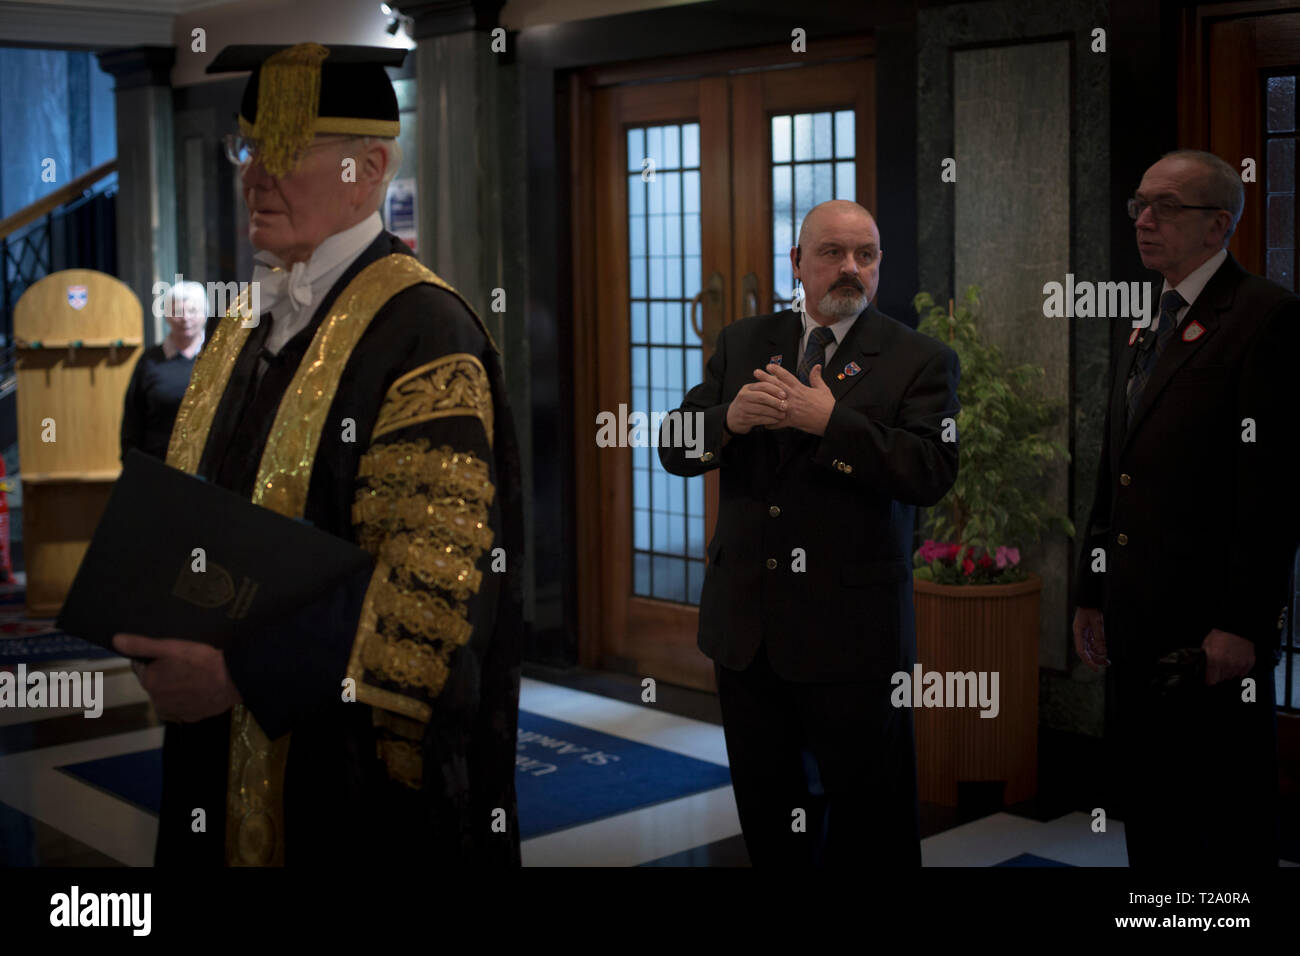 Sir Menzies Campbell, Chancellor, waiting for the start of the ceremony at the Younger Hall at the University of St. Andrews, on graduation day, 30th November, 2016. - Stock Image